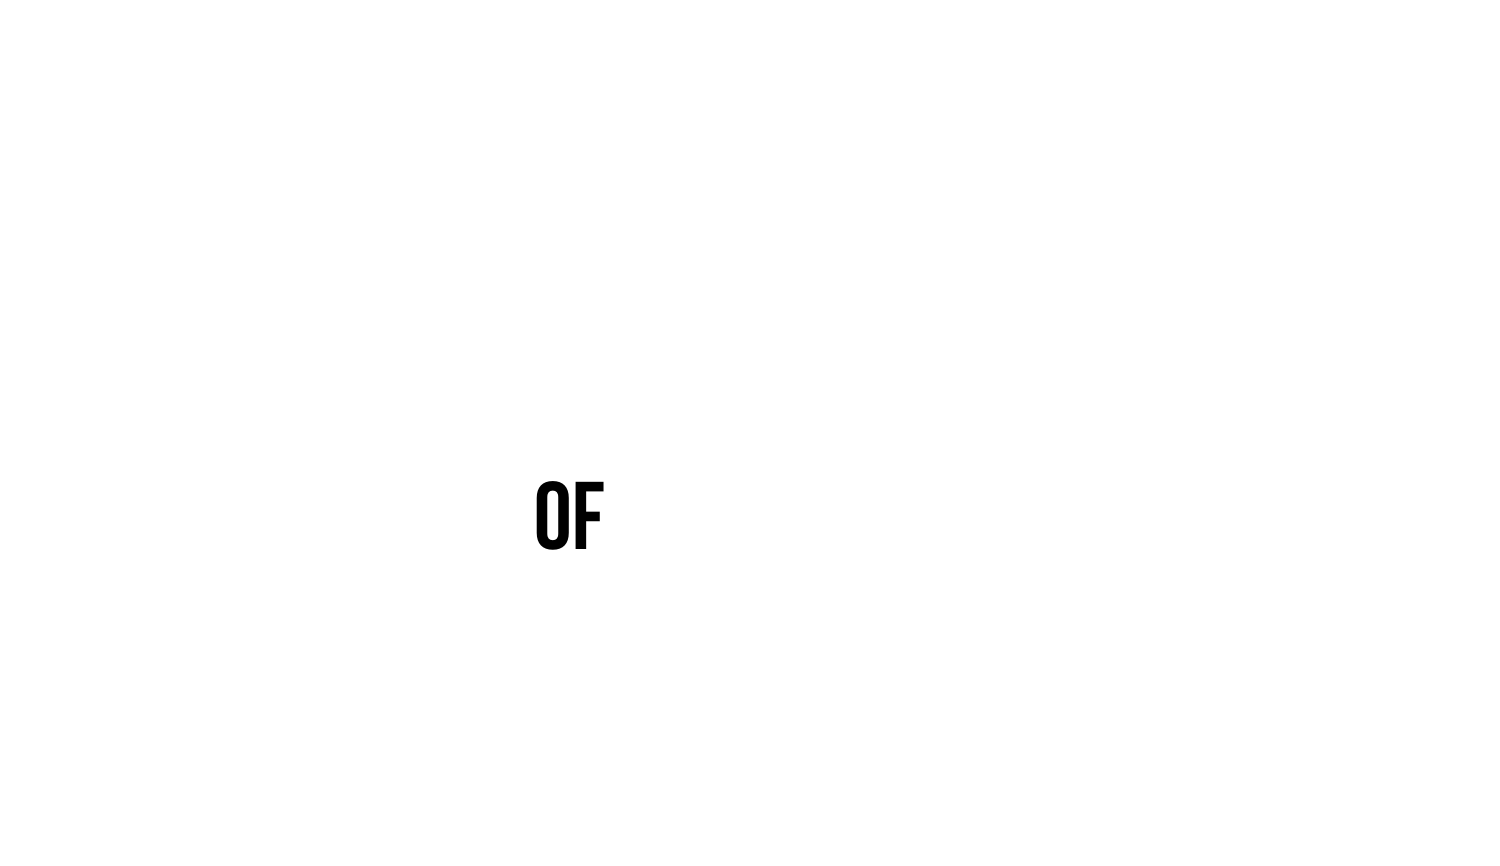 Colac Chamber of Commerce